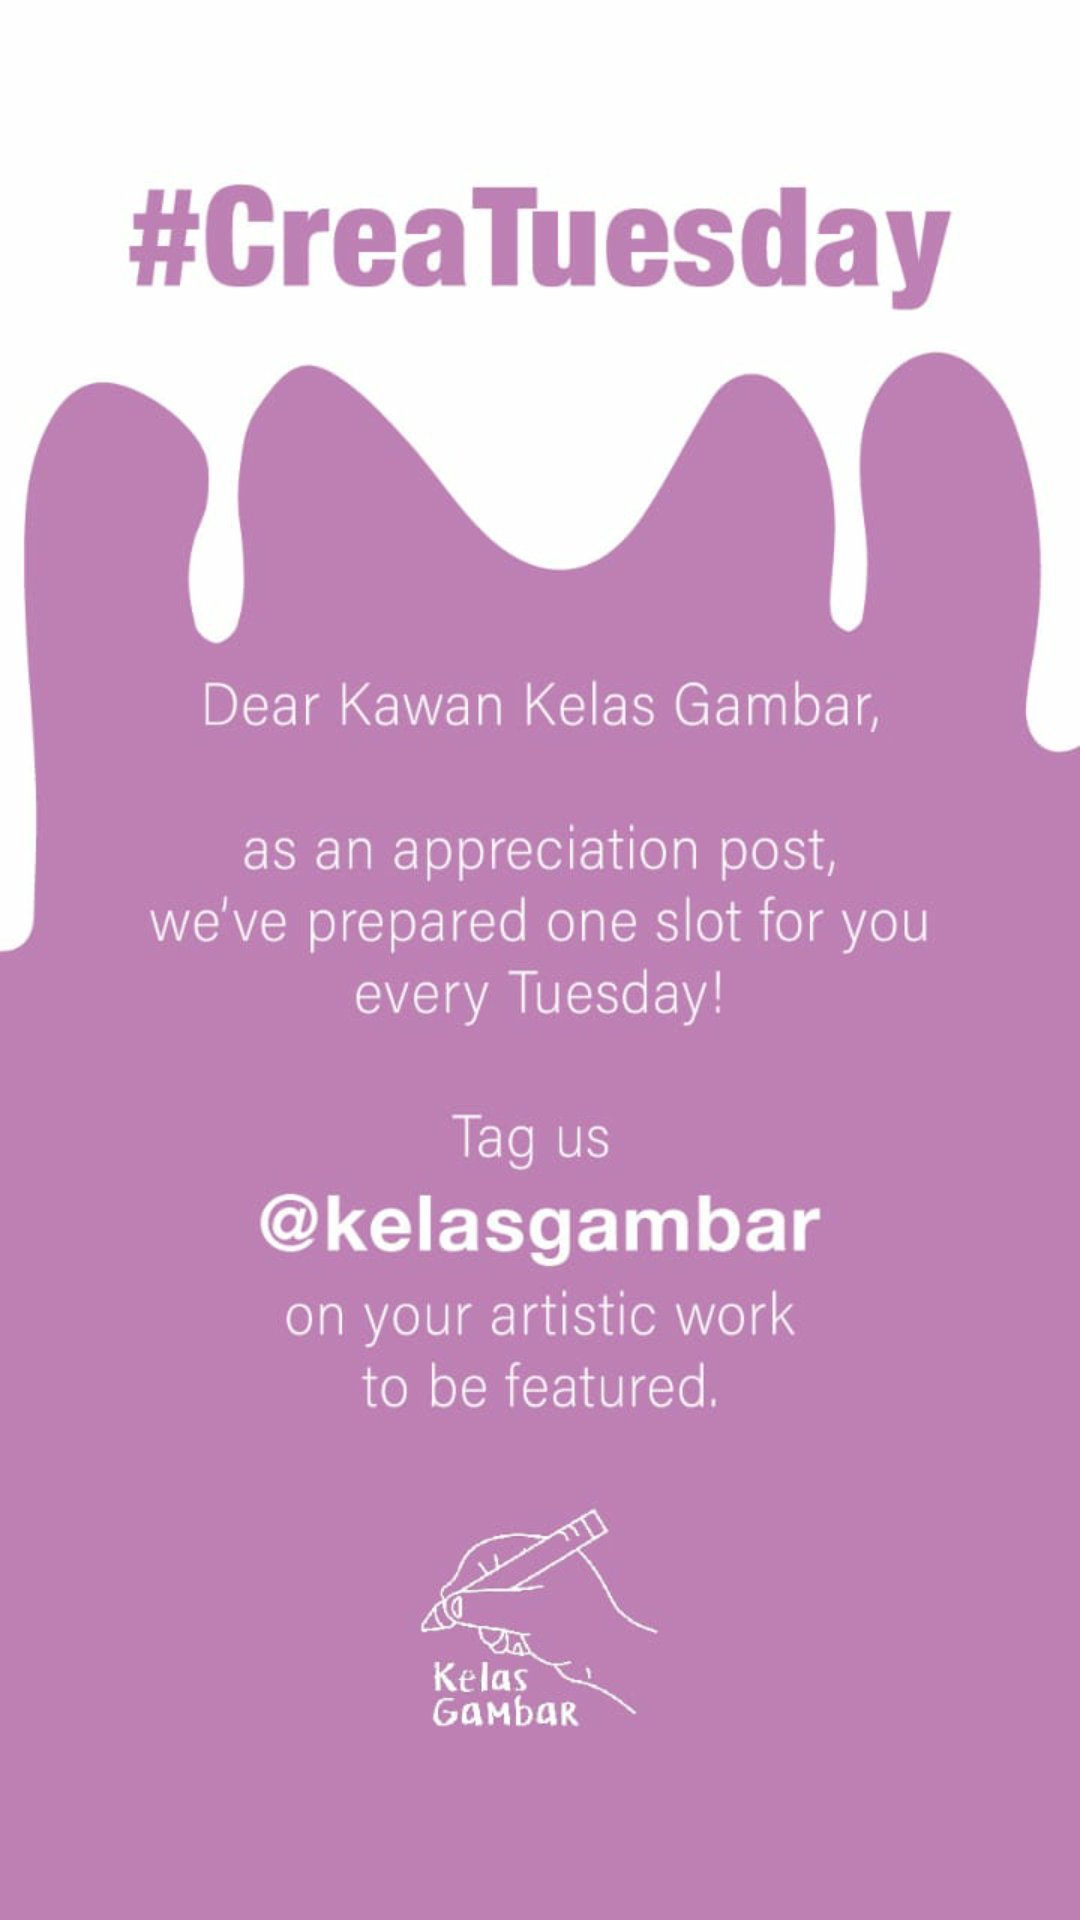 Kelas Gambar On Twitter Every Tuesday We Provide A Slot Of Creatuesday As An Appreciation Post For Your Artworks Kindly Tag Us On Your Art Post Or Email Us To Be Featured